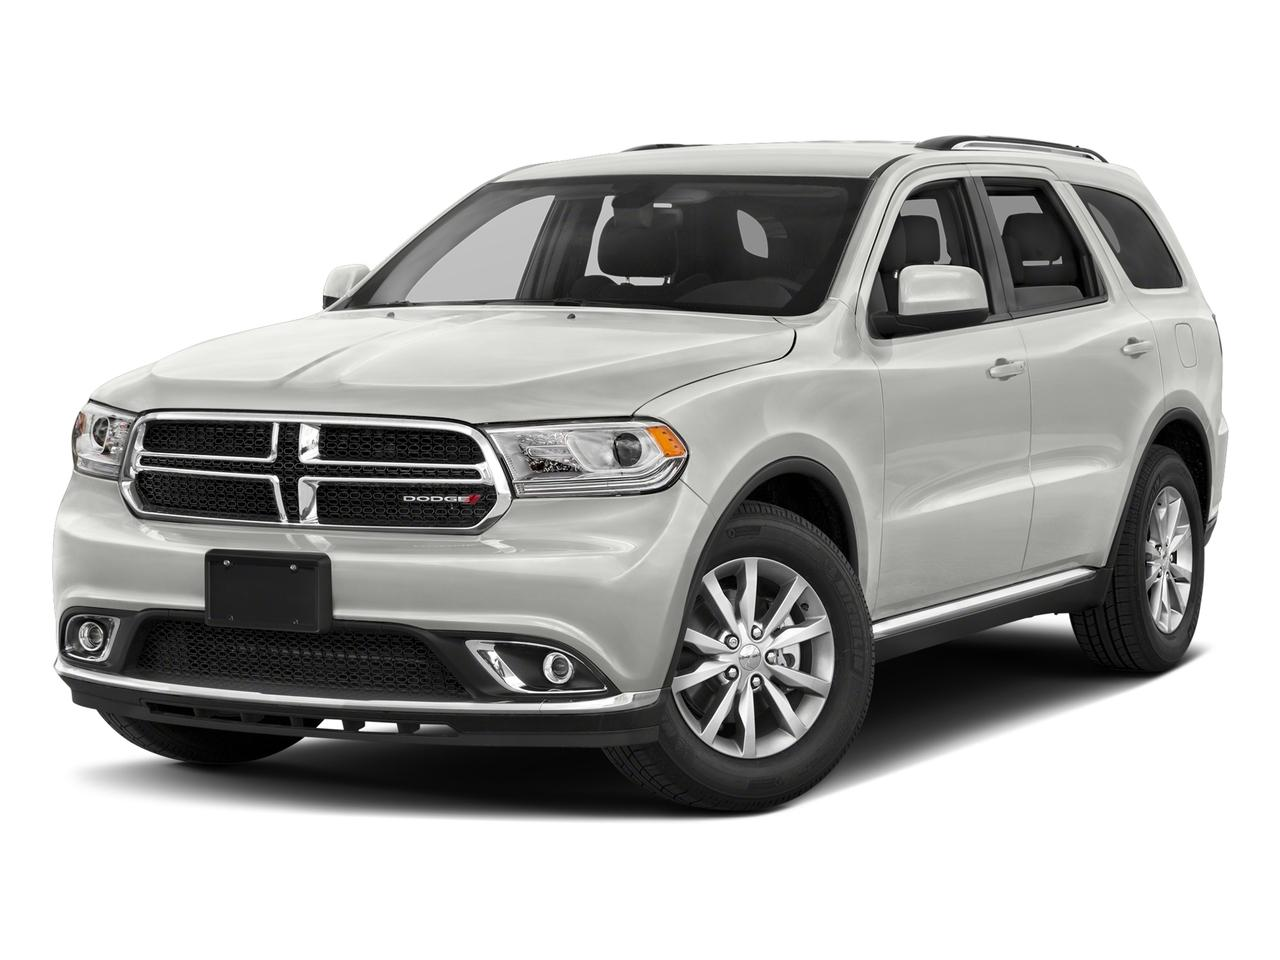 2017 Dodge Durango Vehicle Photo in State College, PA 16801